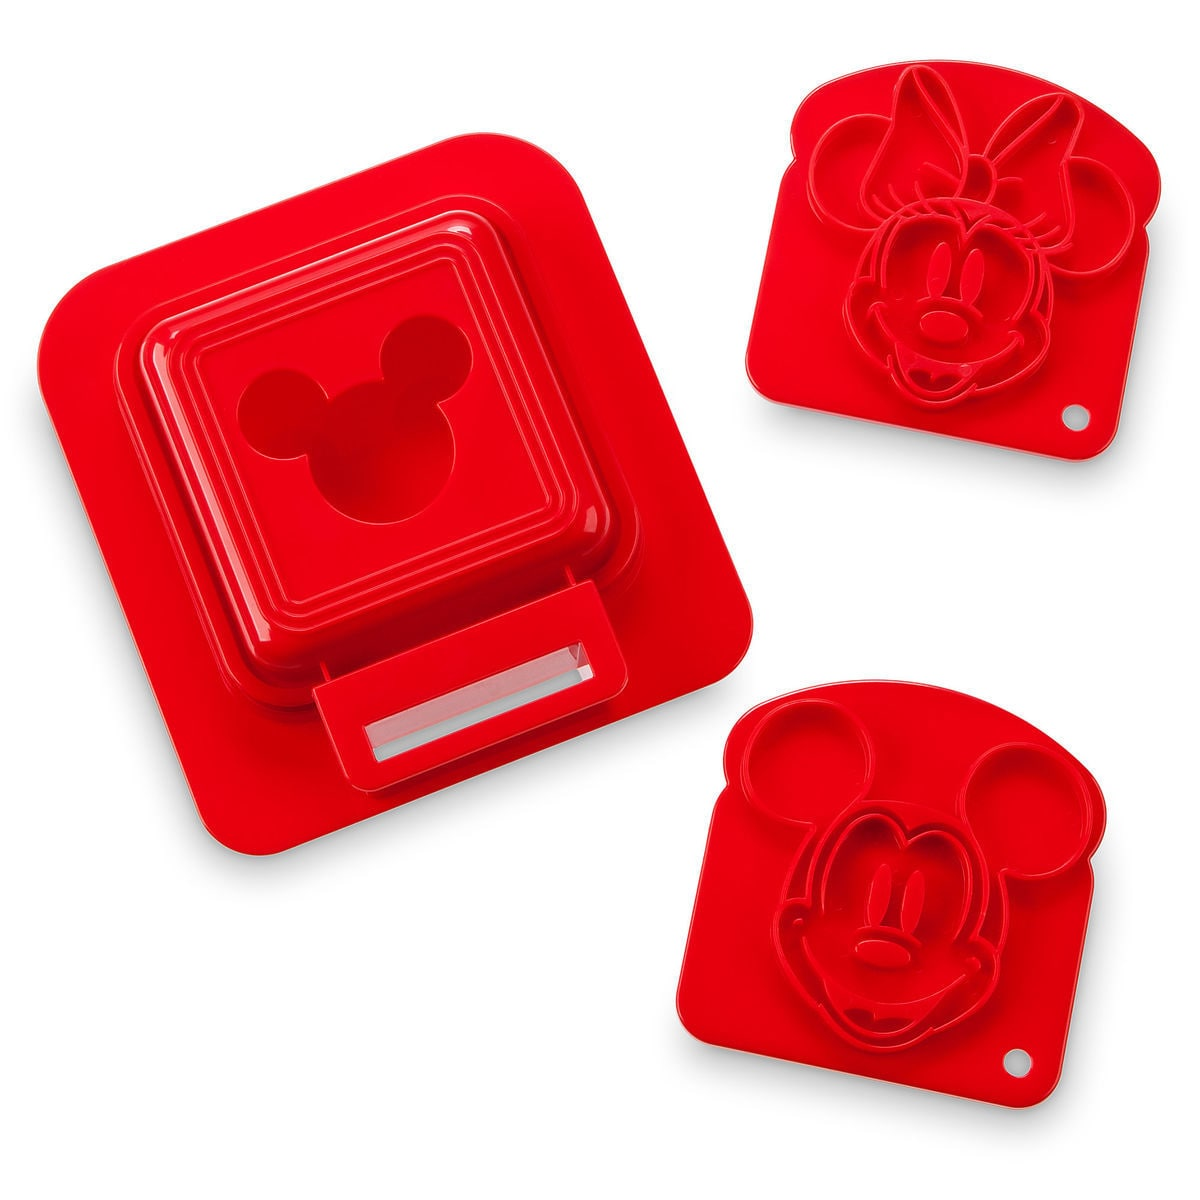 Mickey And Minnie Mouse Sandwich Stamp And Crust Cutter Set Disney